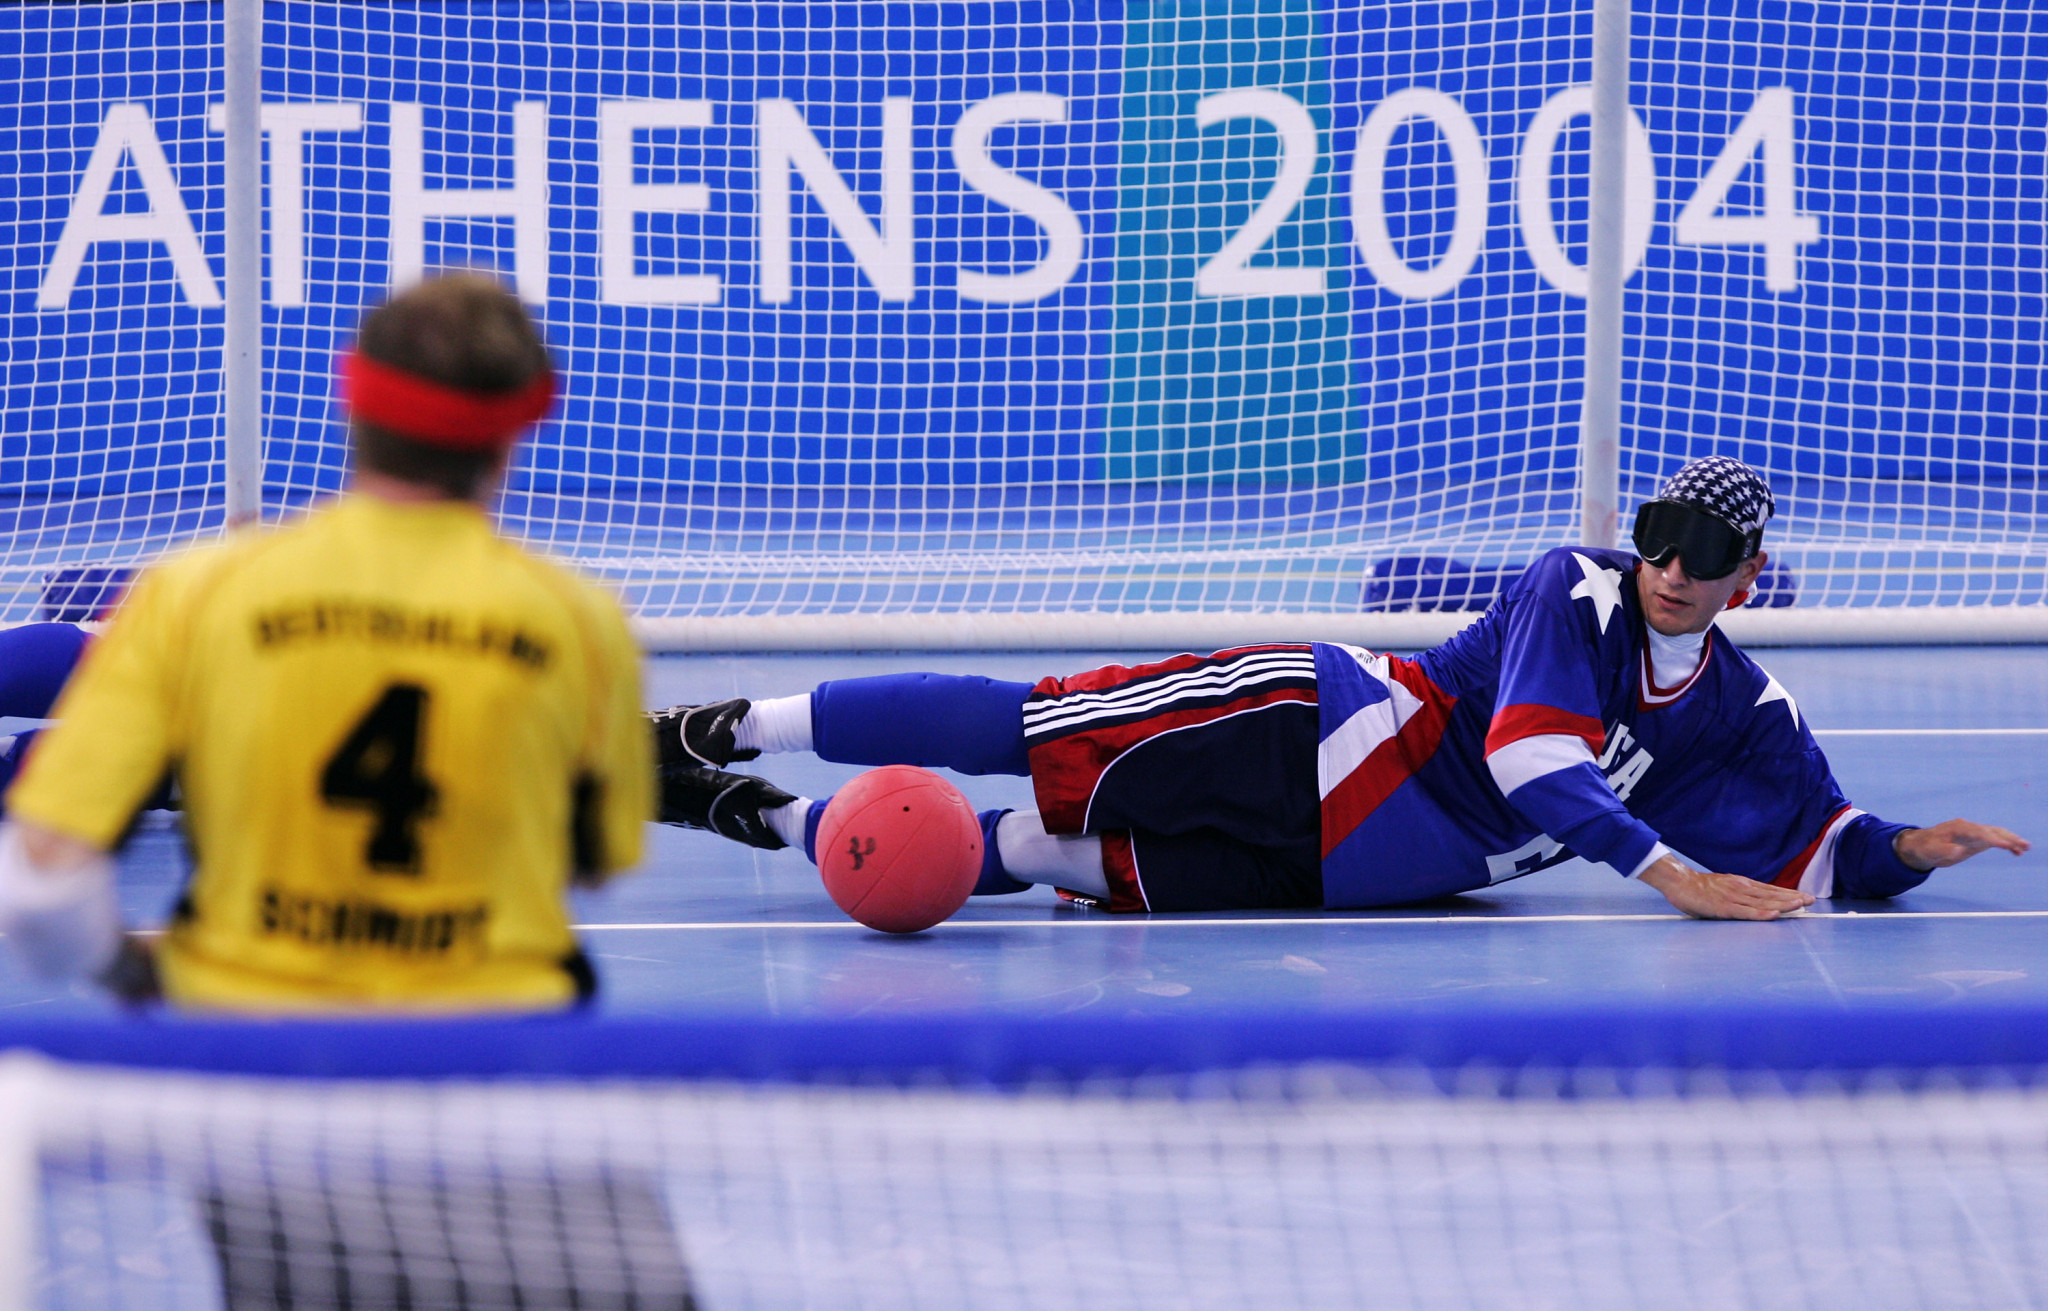 Tyler Merren has won two Paralympic medals in goalball ©Getty Images